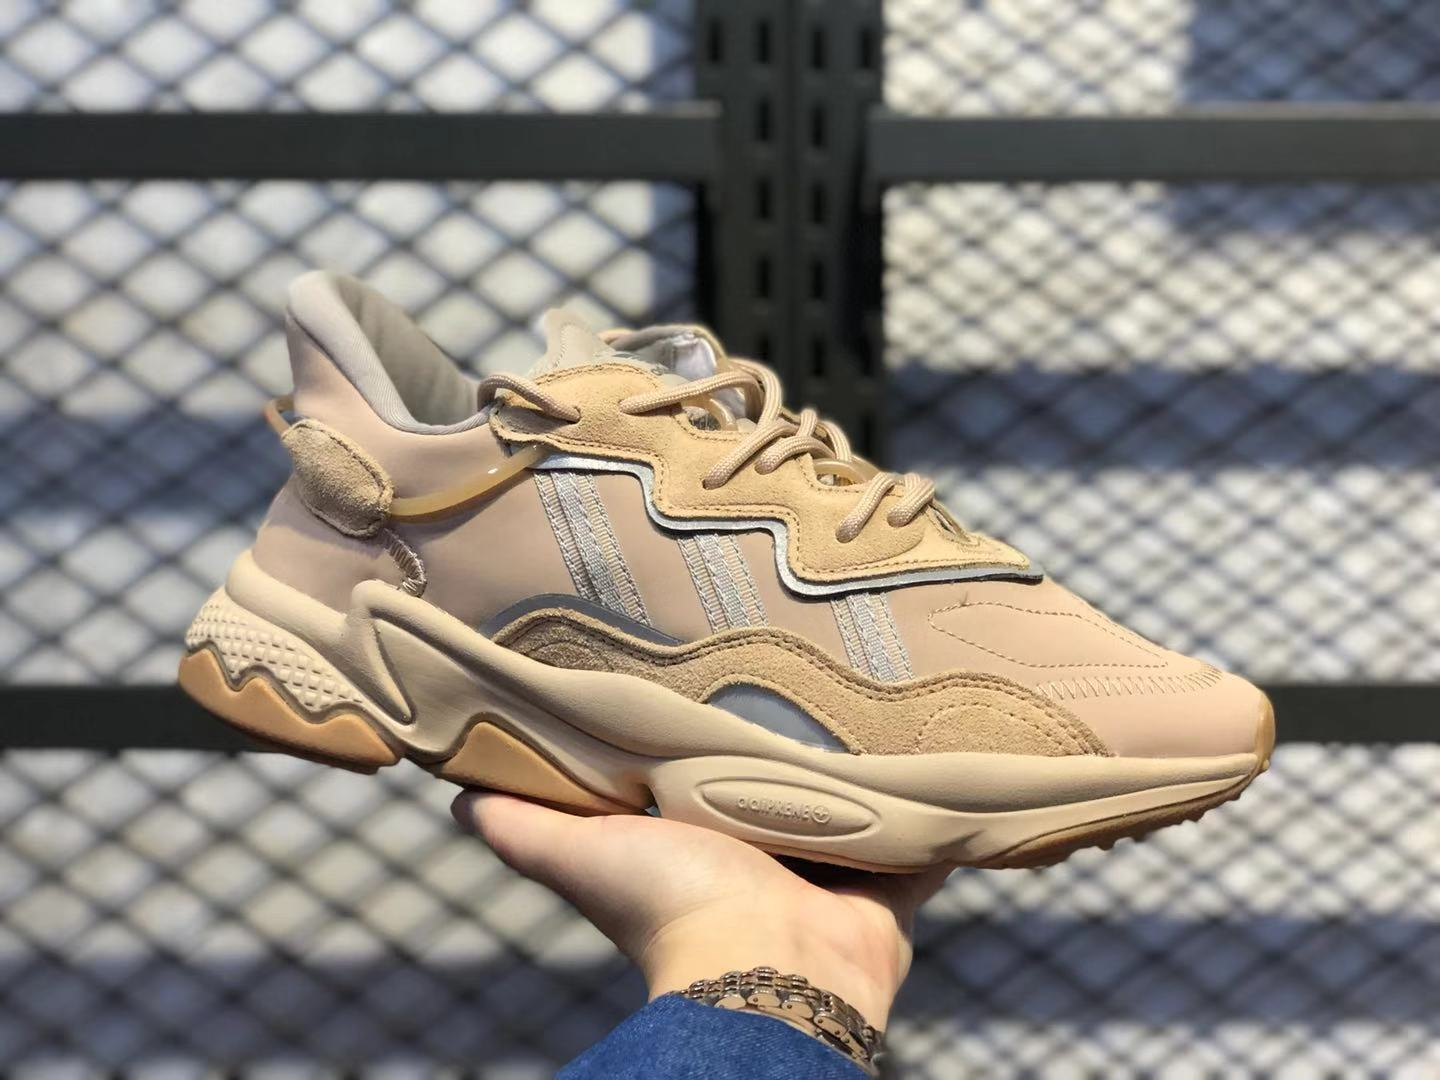 2020 New Release Adidas Ozweego St Pale Nude/Light Brown-Solar Red ...